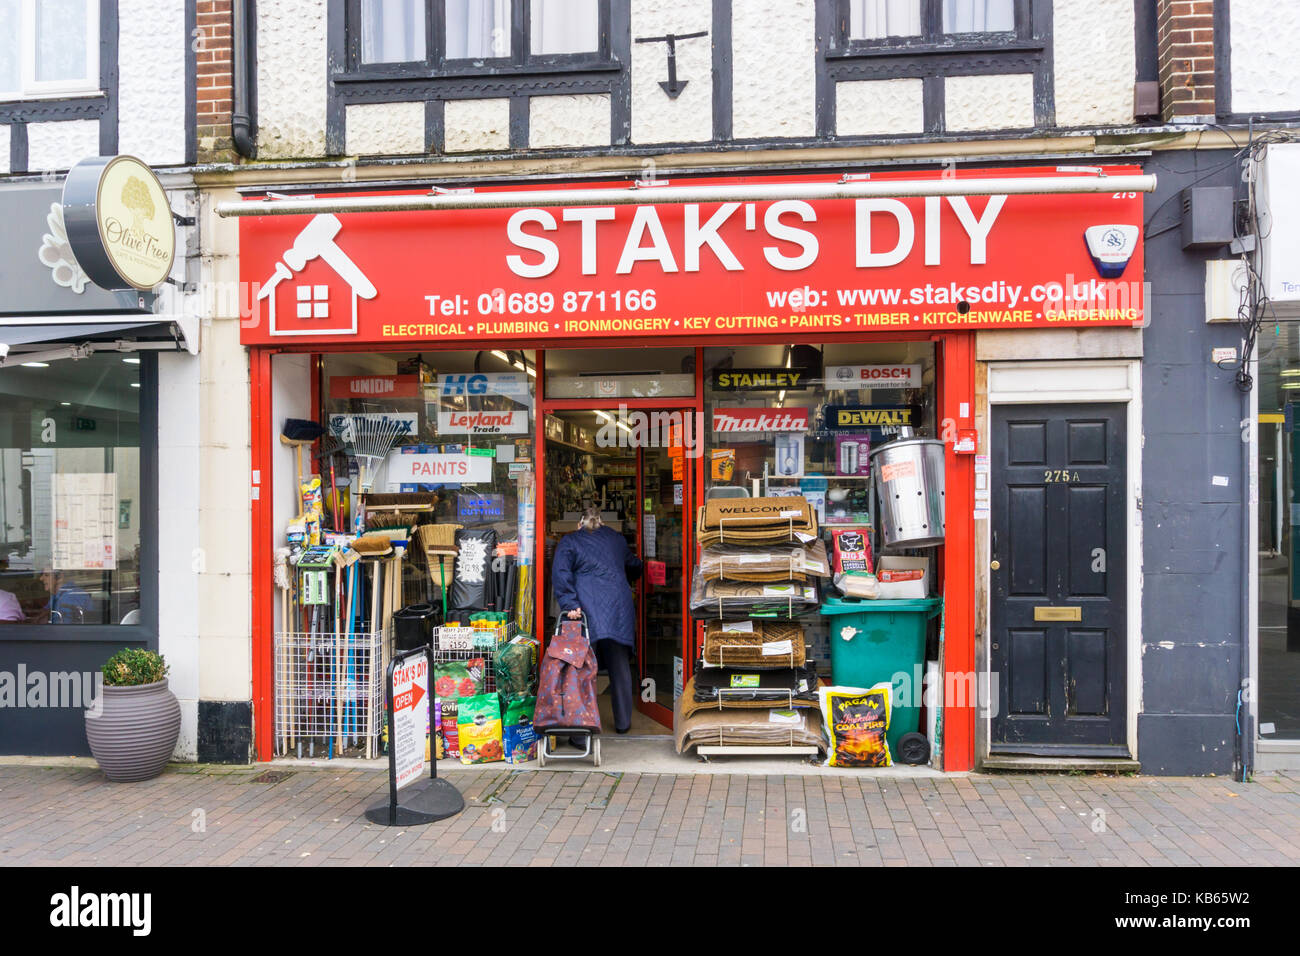 Stak's DIY do-it-yourself shop and builder's merchants on Orpington High Street. - Stock Image